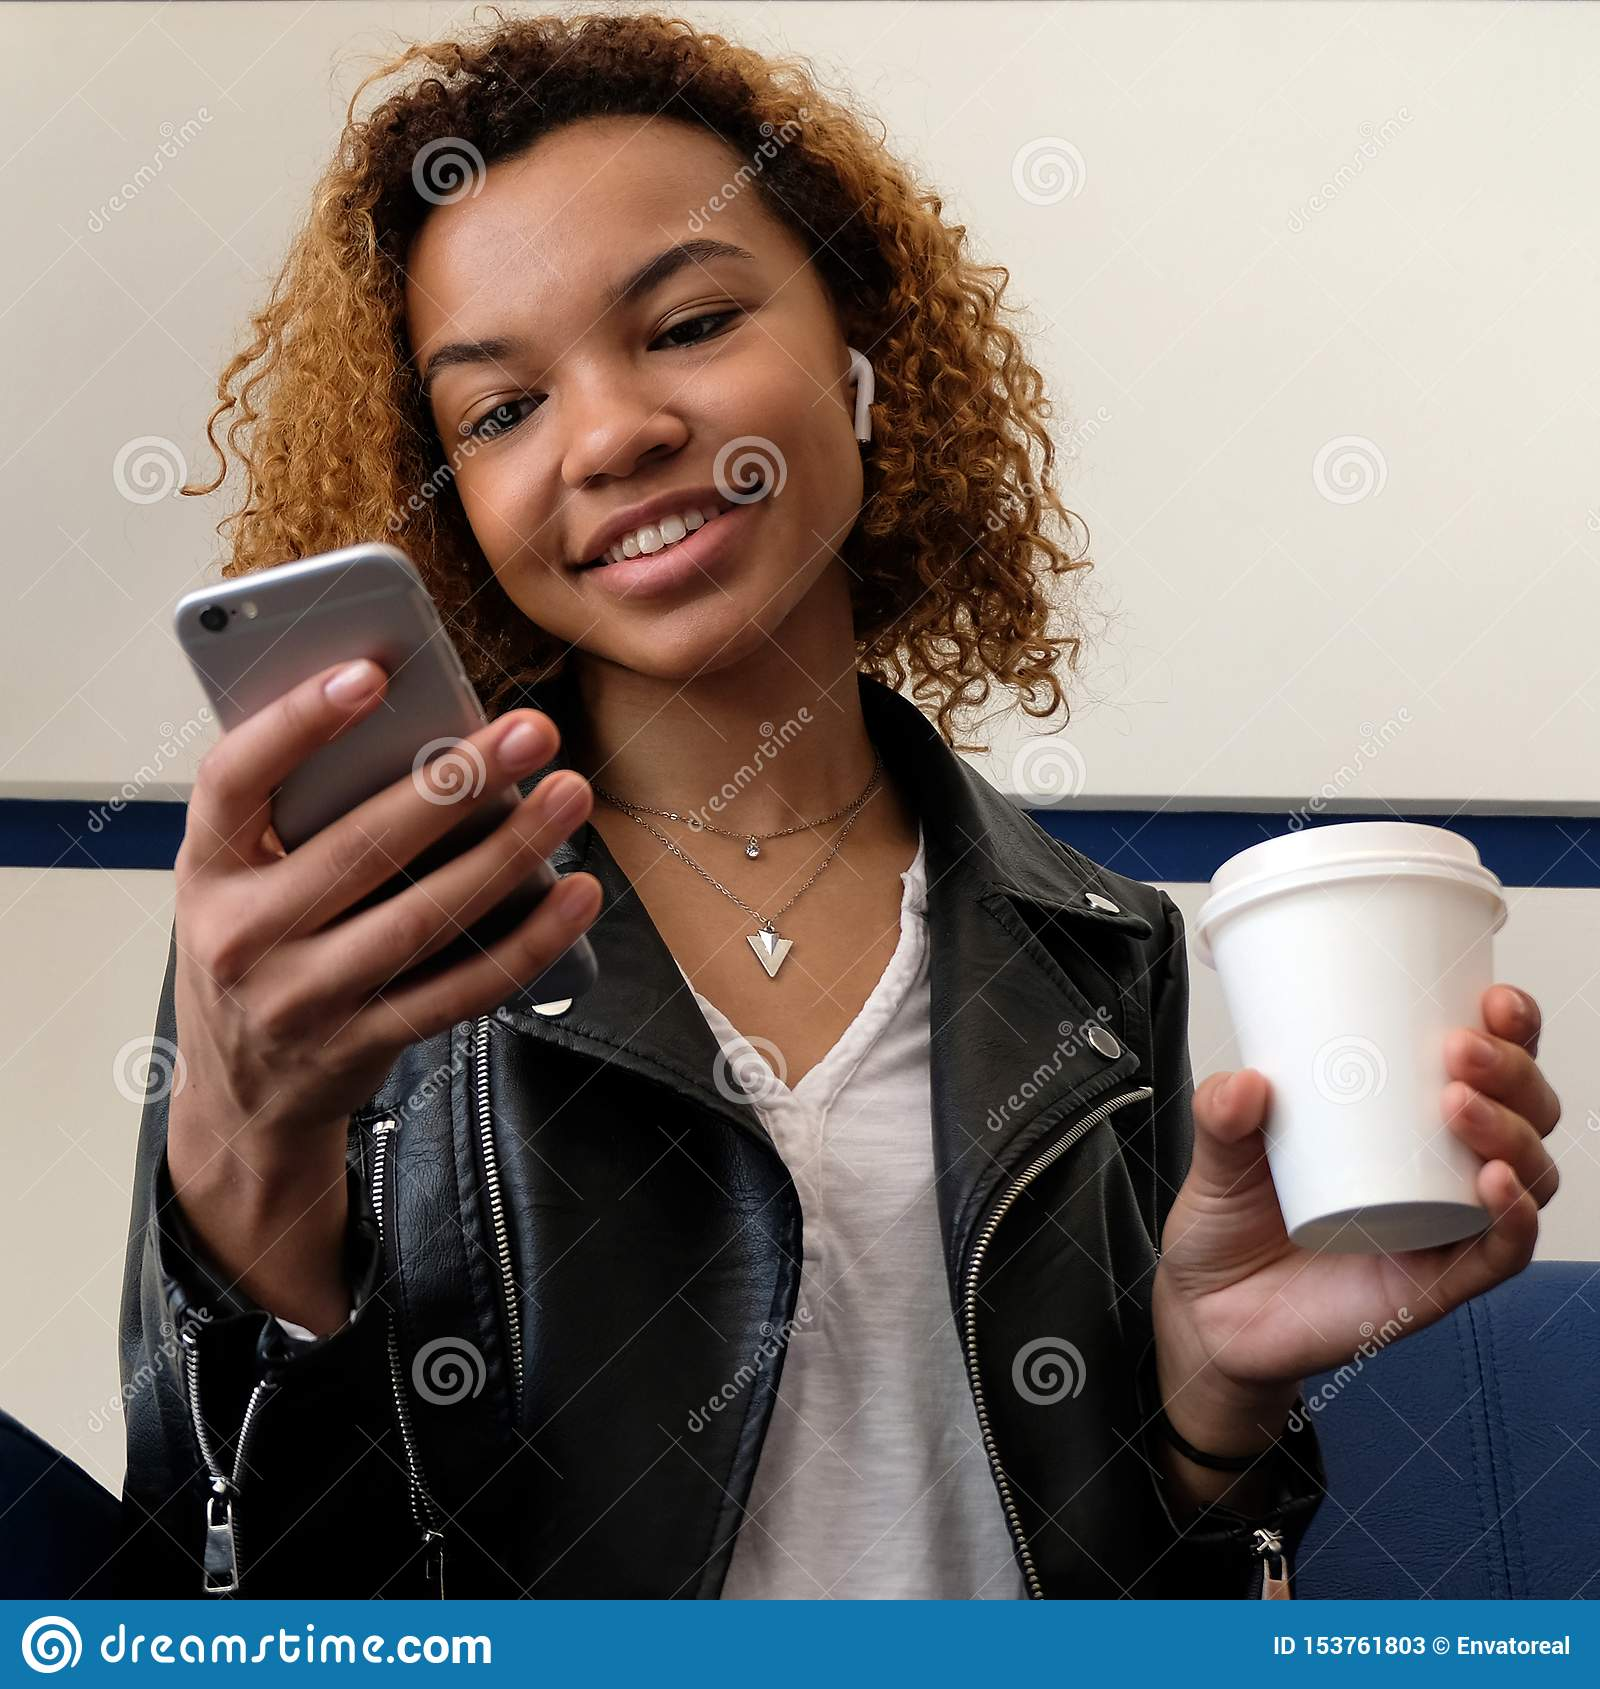 A Cute Young African American Woman Is Holding A Telephone And A Paper Cup Of Coffee Headset Without Wires In The Ear Listening Stock Image Image Of Cellphone Afro 153761803